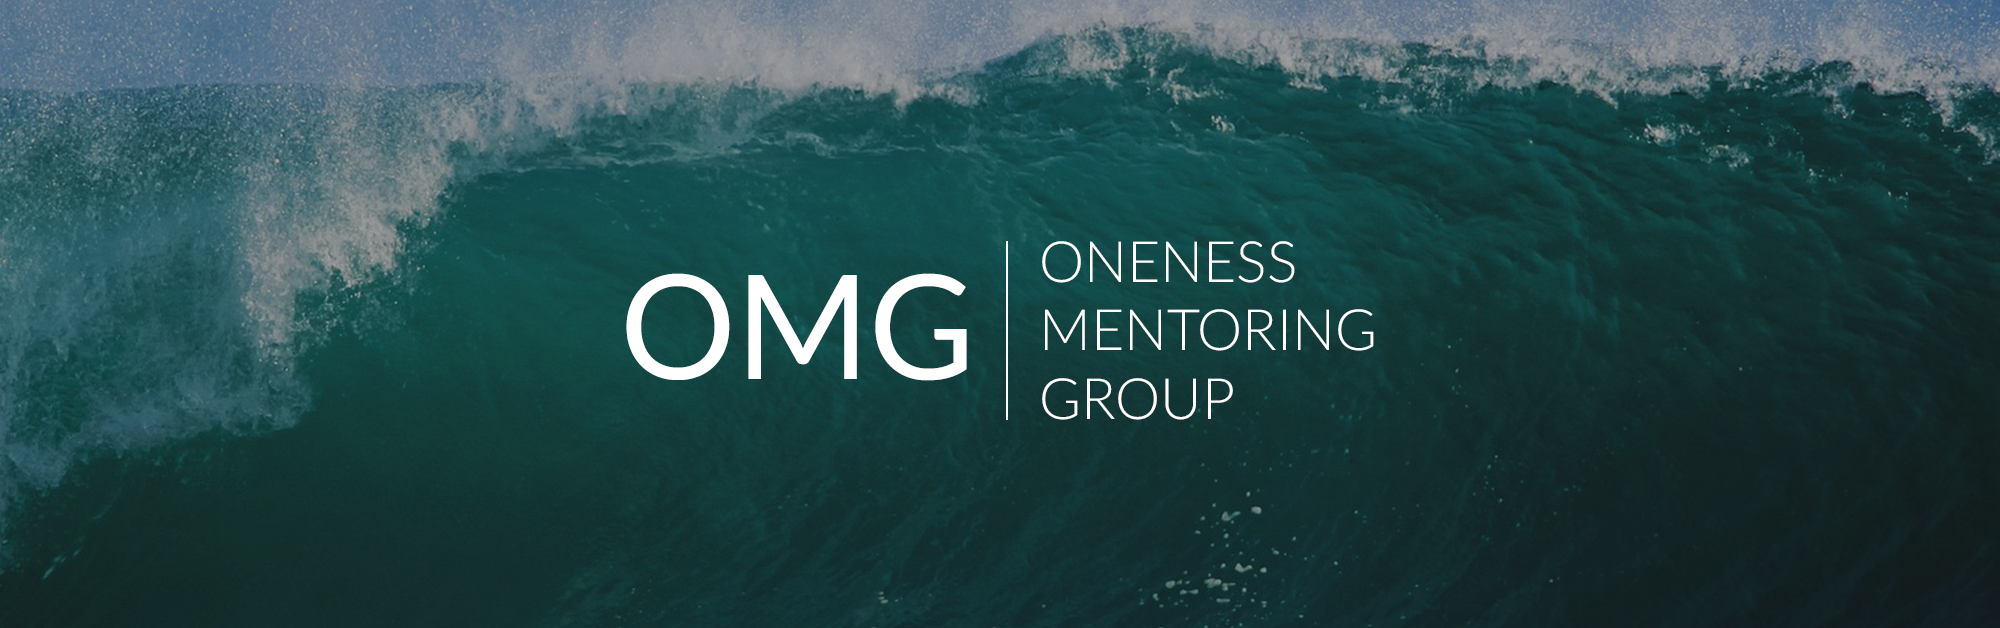 OMG | Oneness Mentoring Group